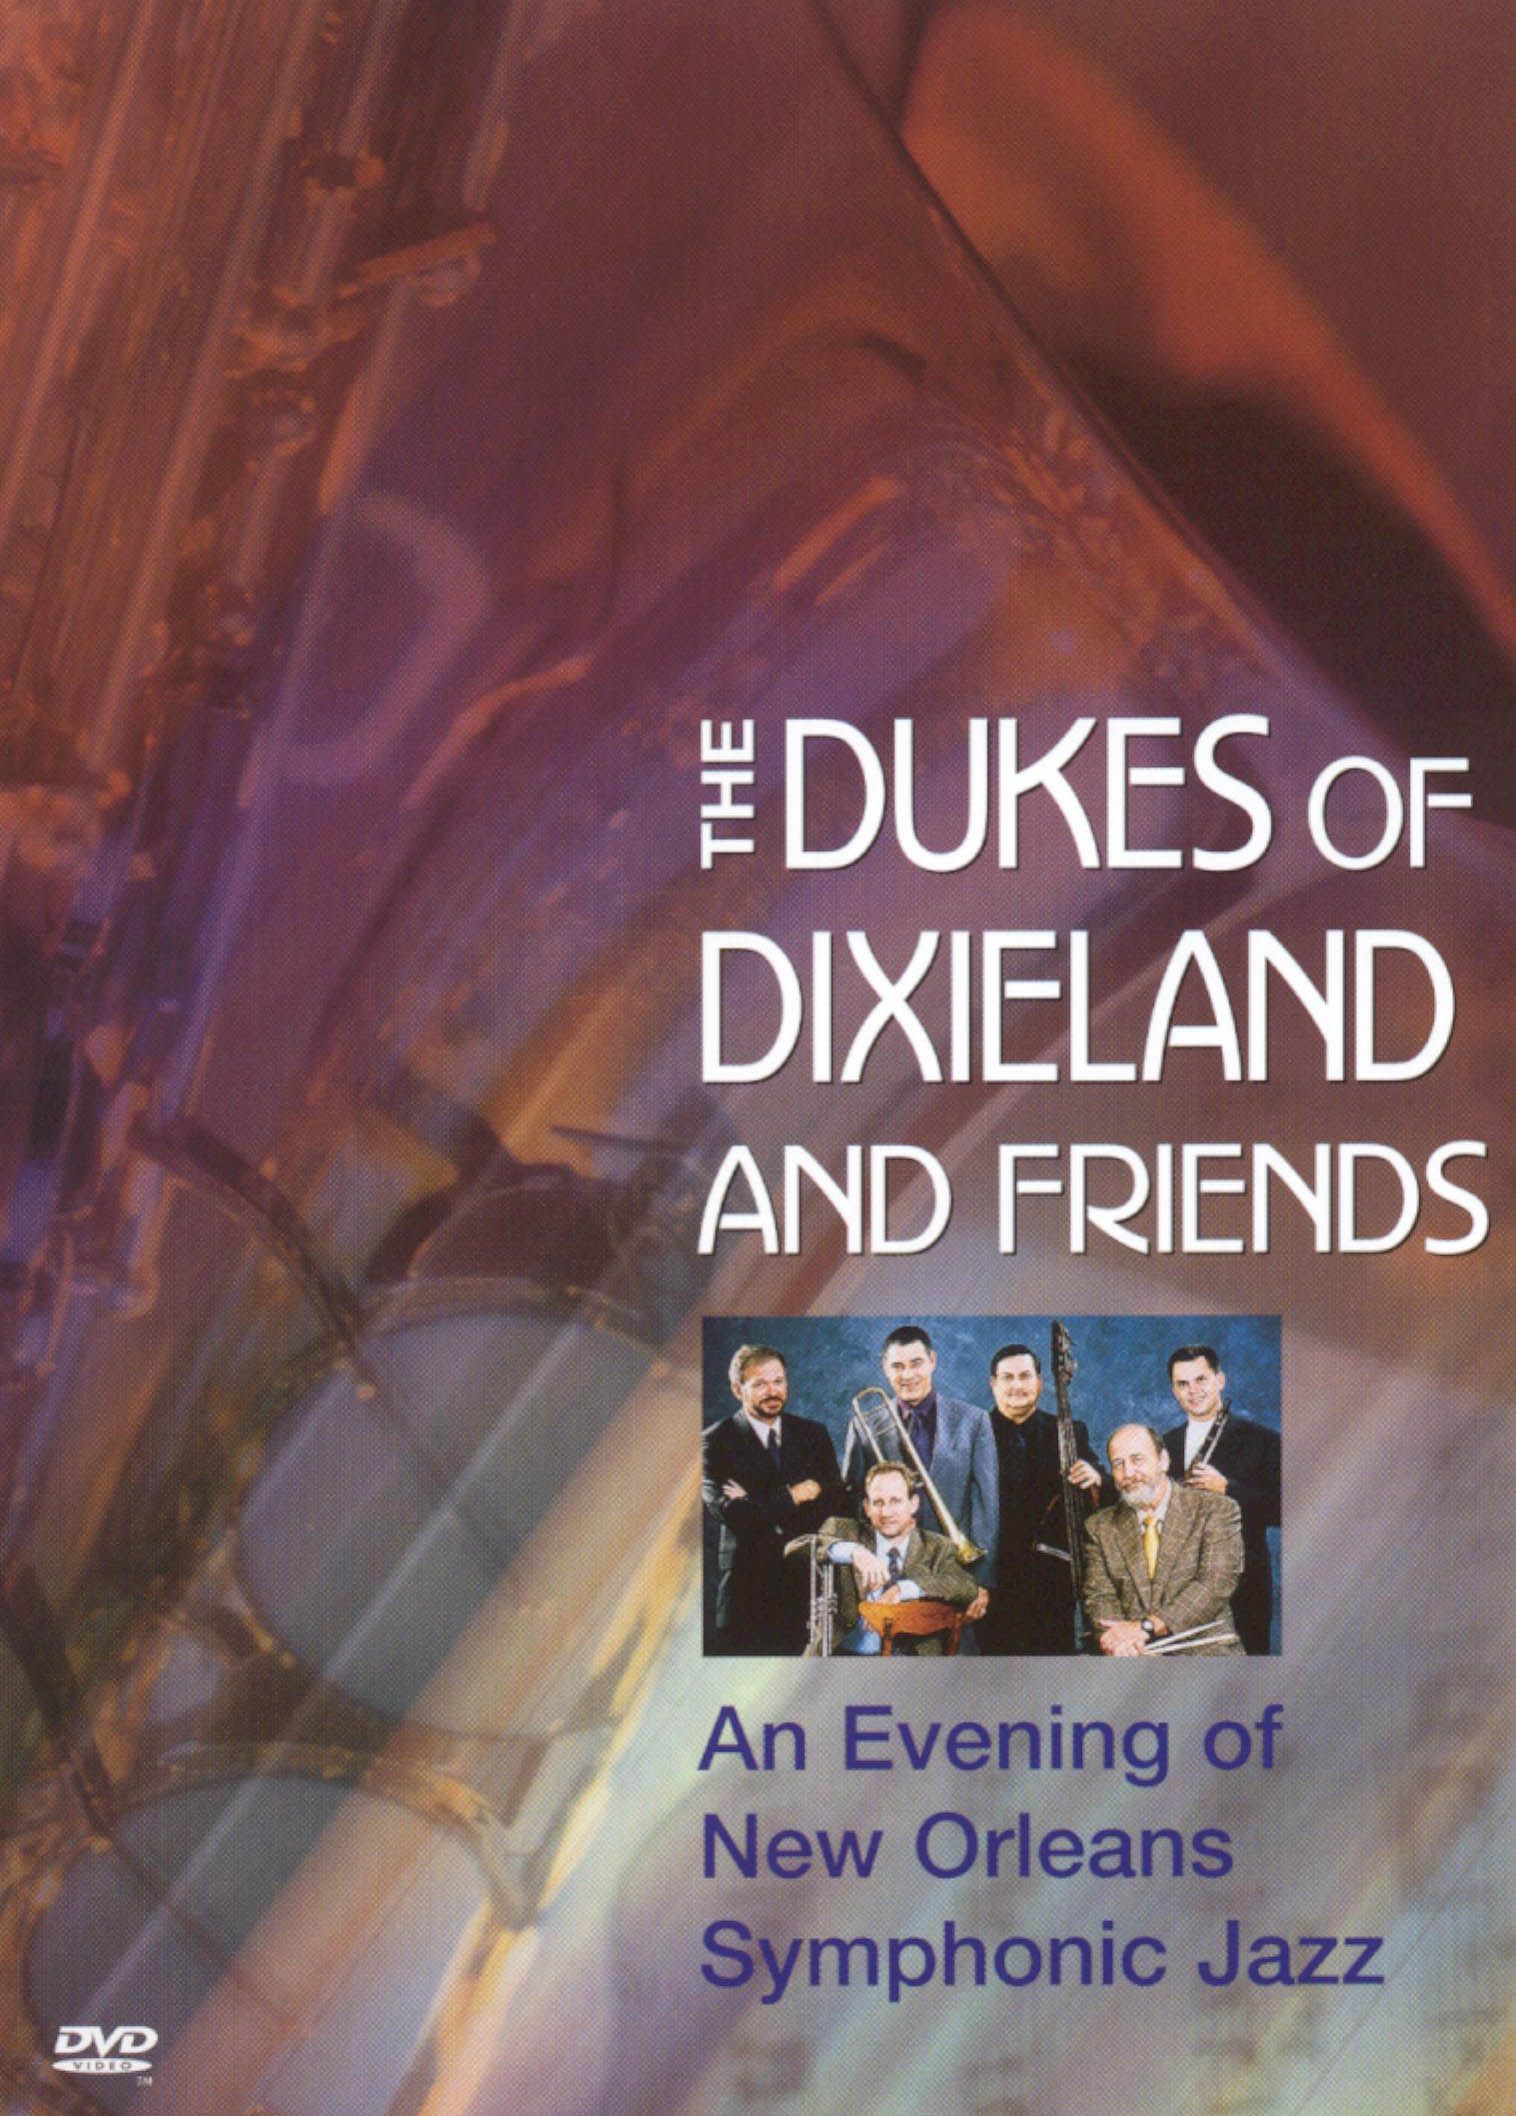 The Dukes of Dixieland and Friends: An Evening of New Orleans Symphonic Jazz